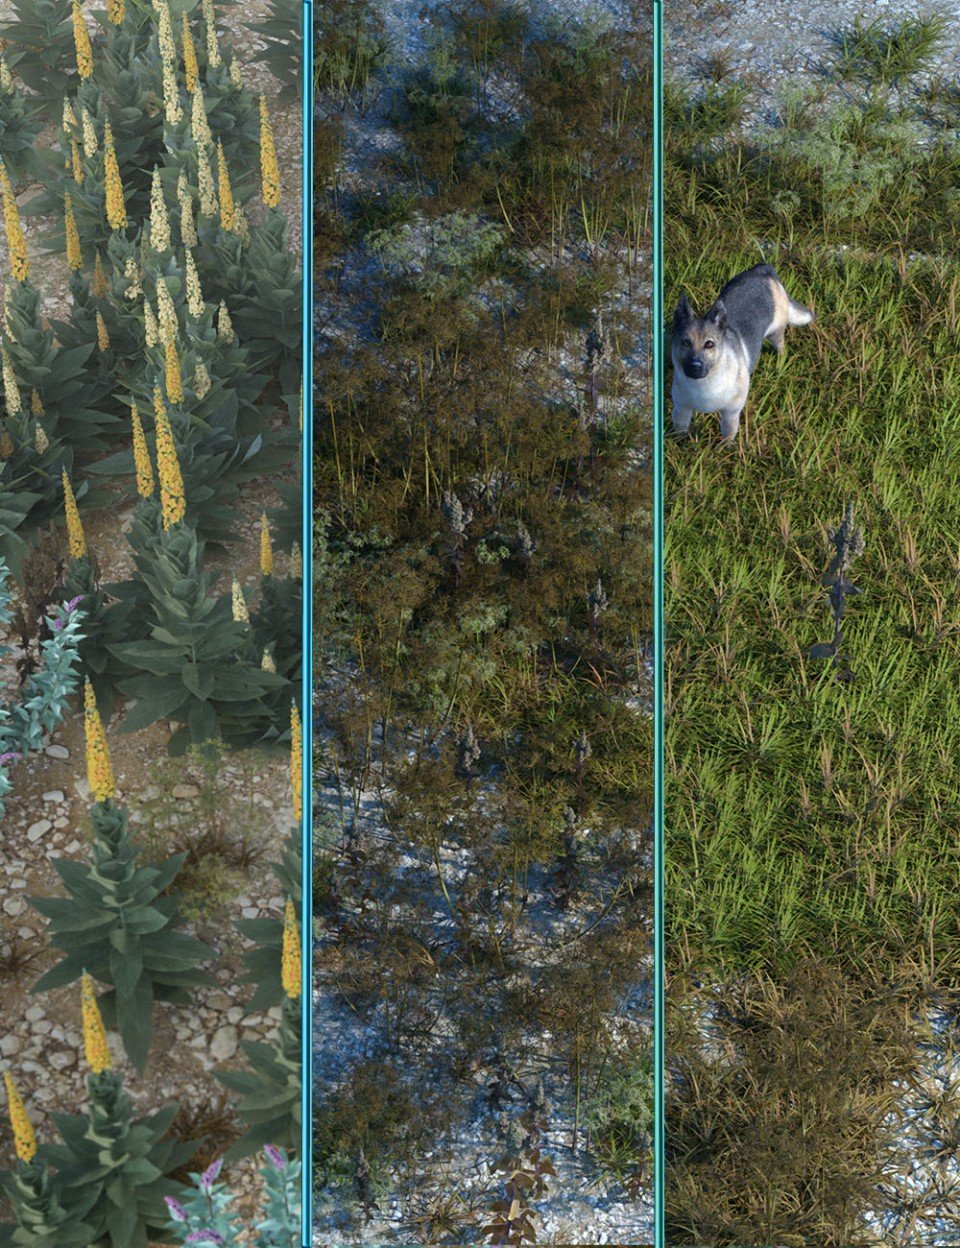 Wasteland Plants and Weeds – Low Resolution Instant Ecosystems_DAZ3D下载站